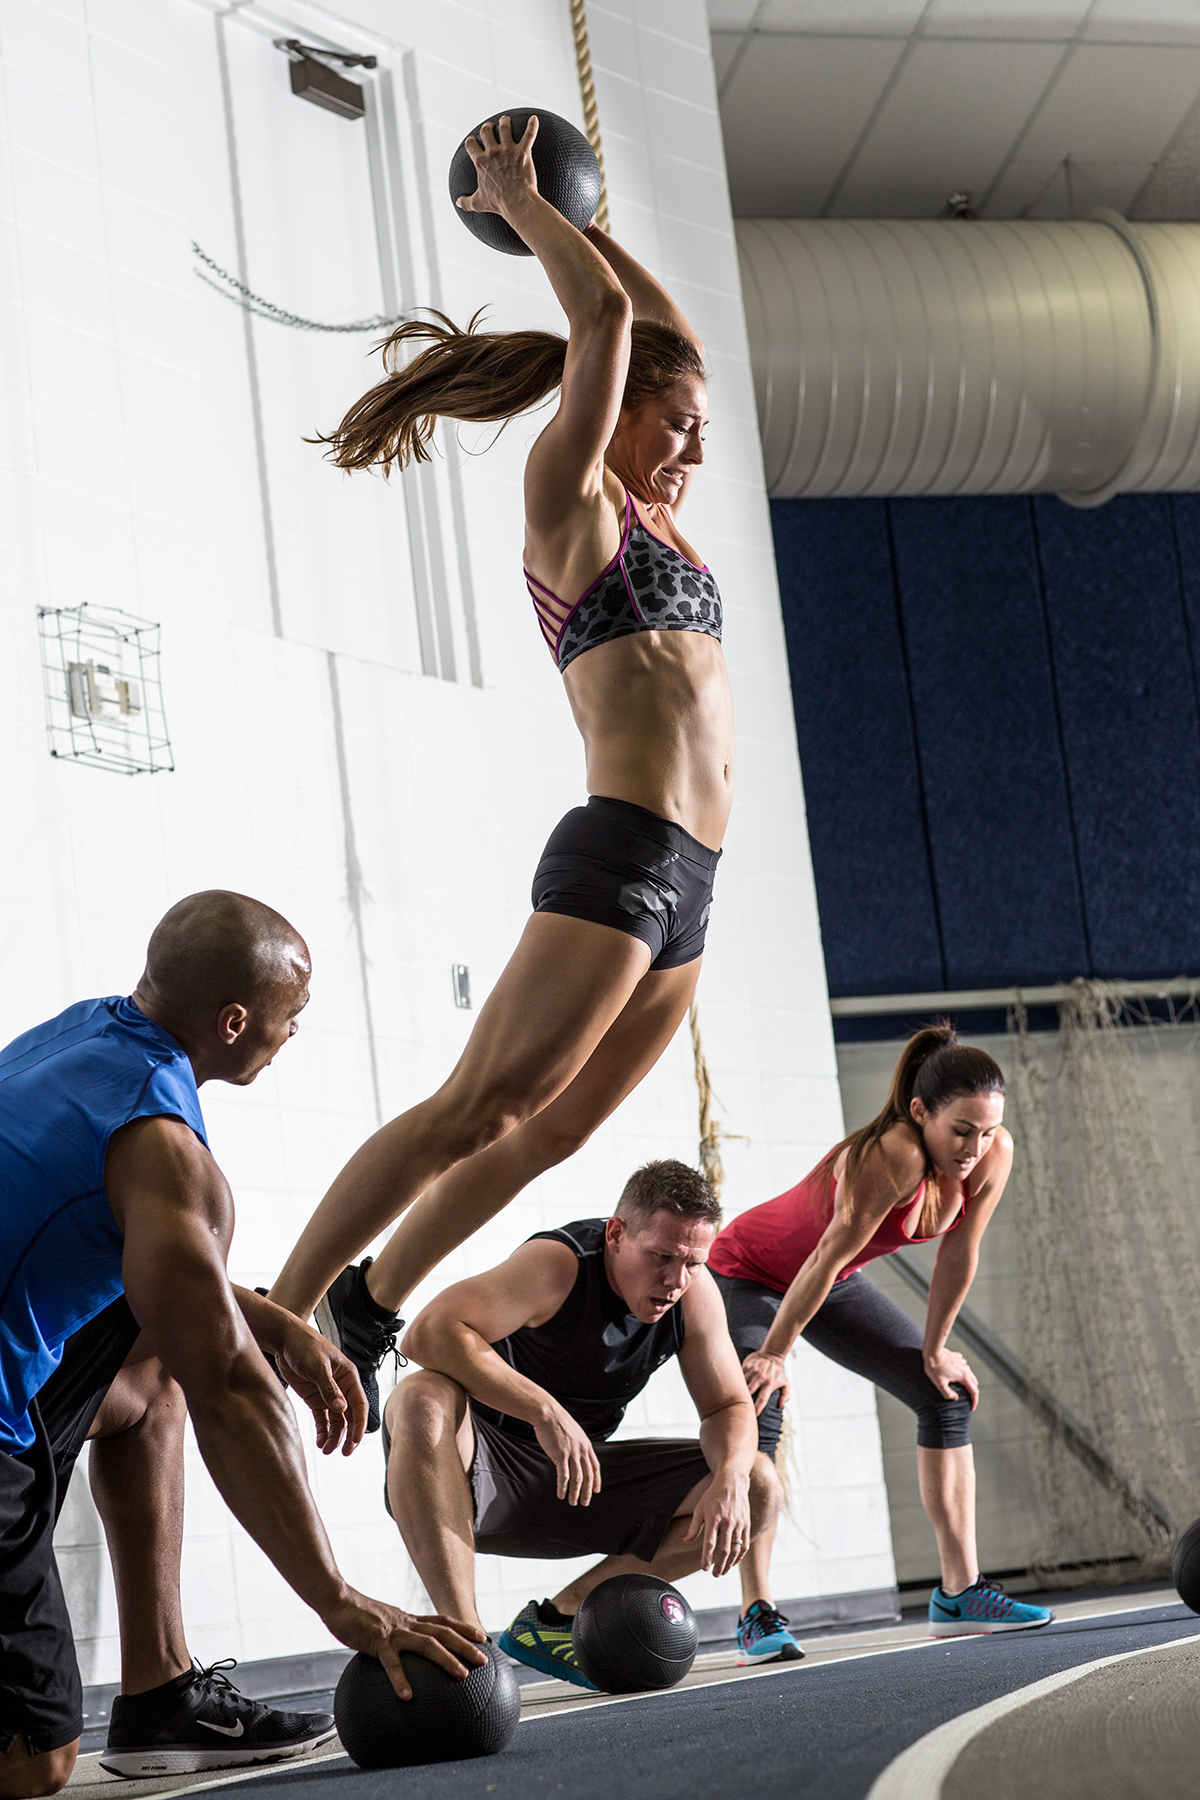 Denver Commercial Fitness Photographer | Jason Innes